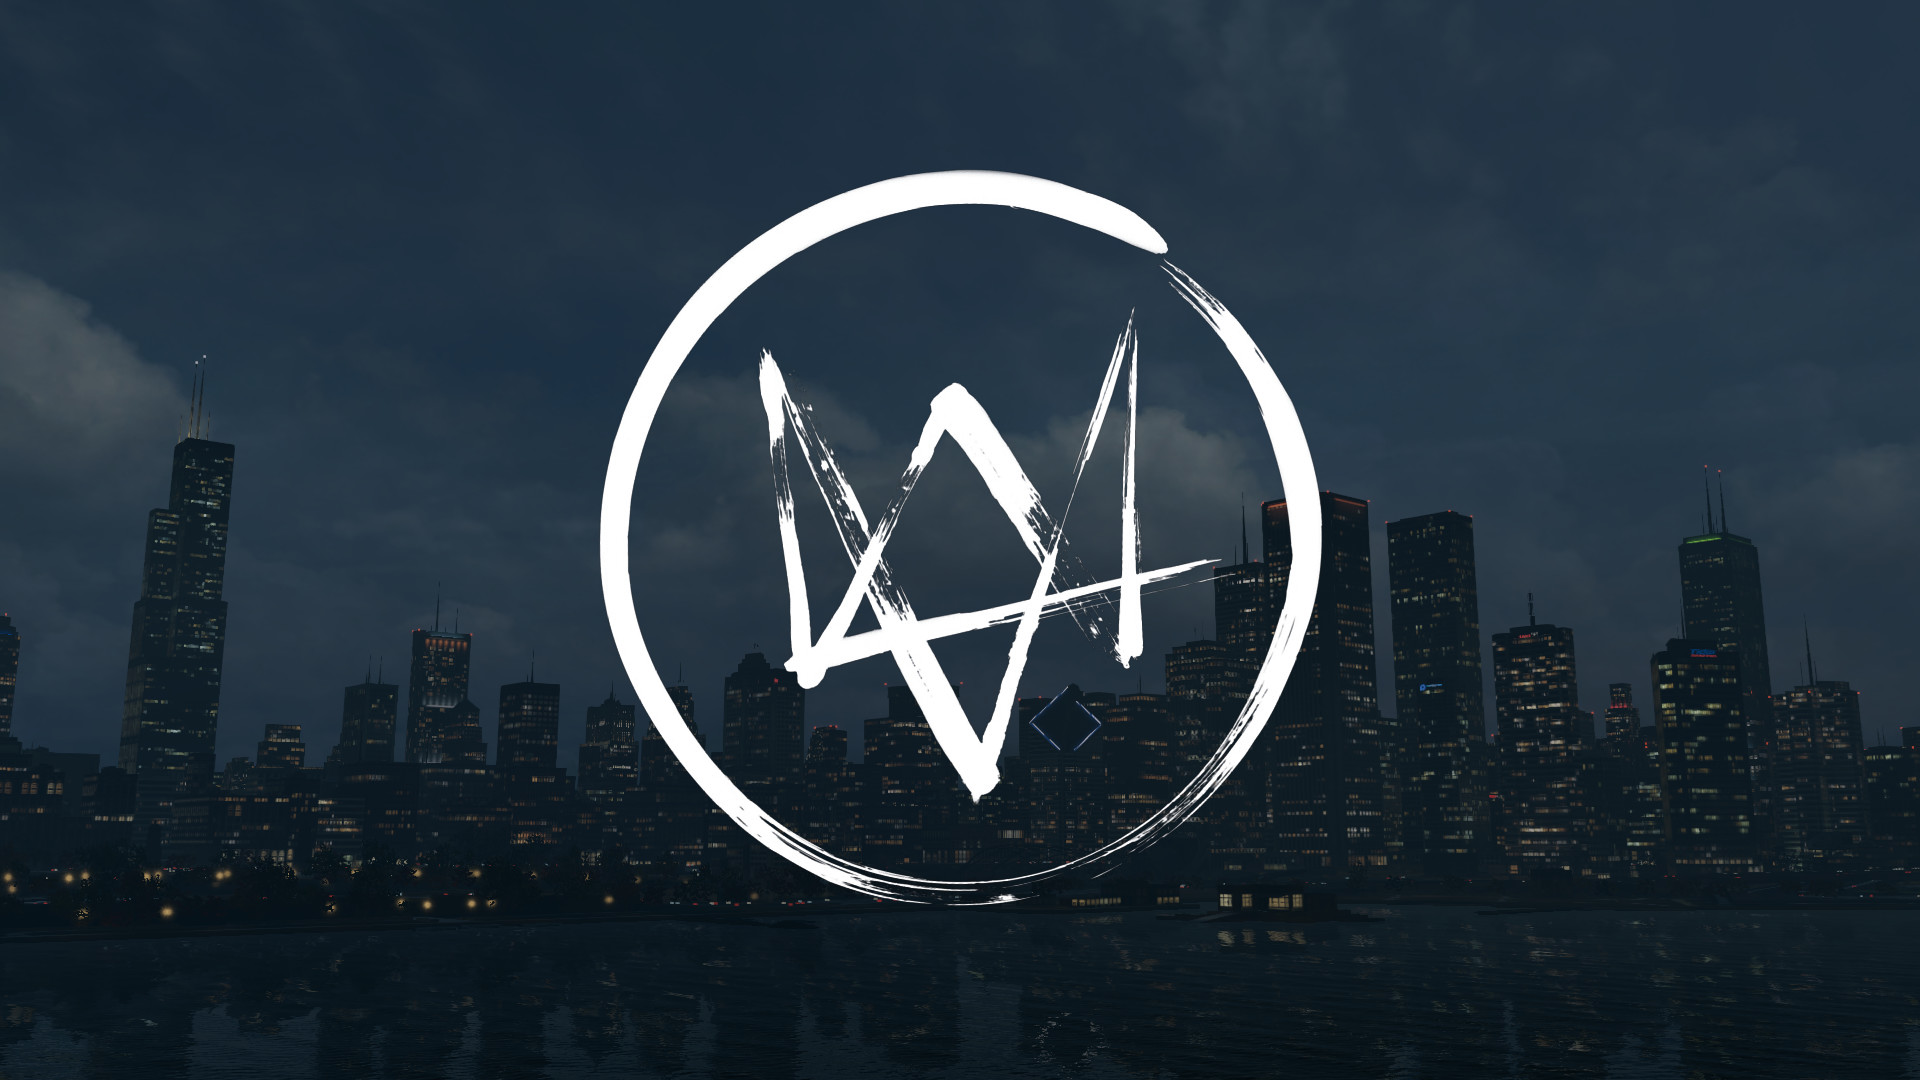 1920x1080 Video Game - Watch Dogs Wallpaper